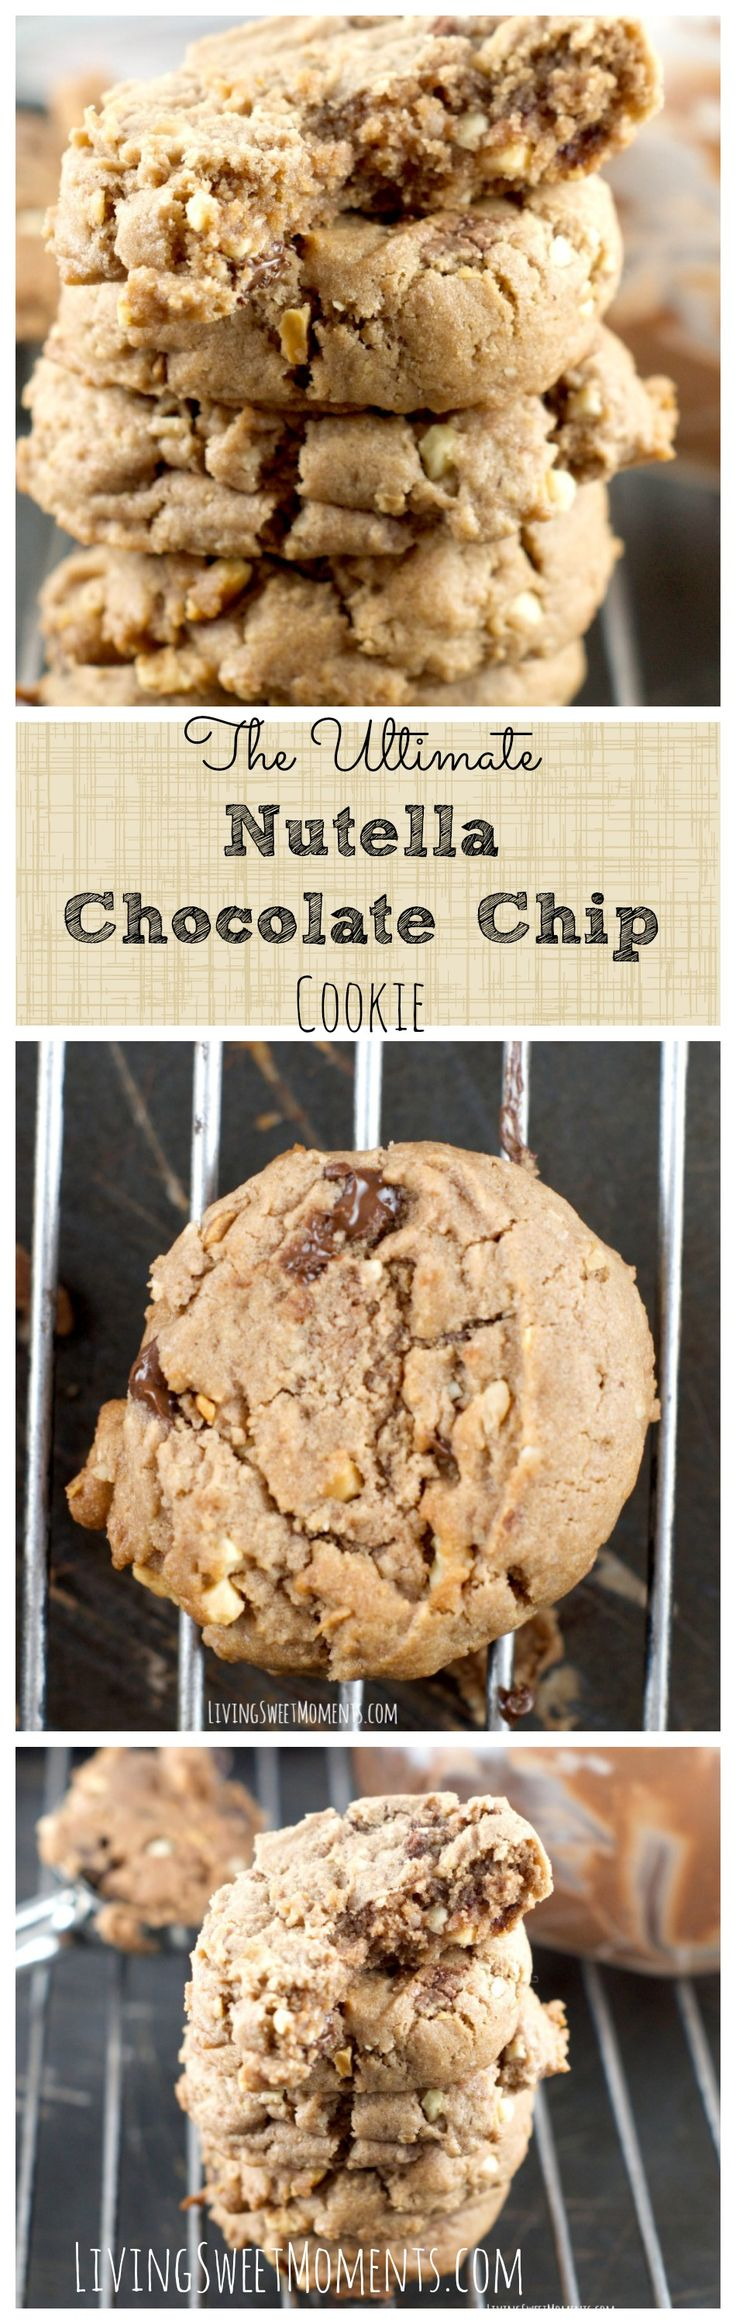 Chocolate Chip Cookies - This is absolutely the best chocolate chip ...